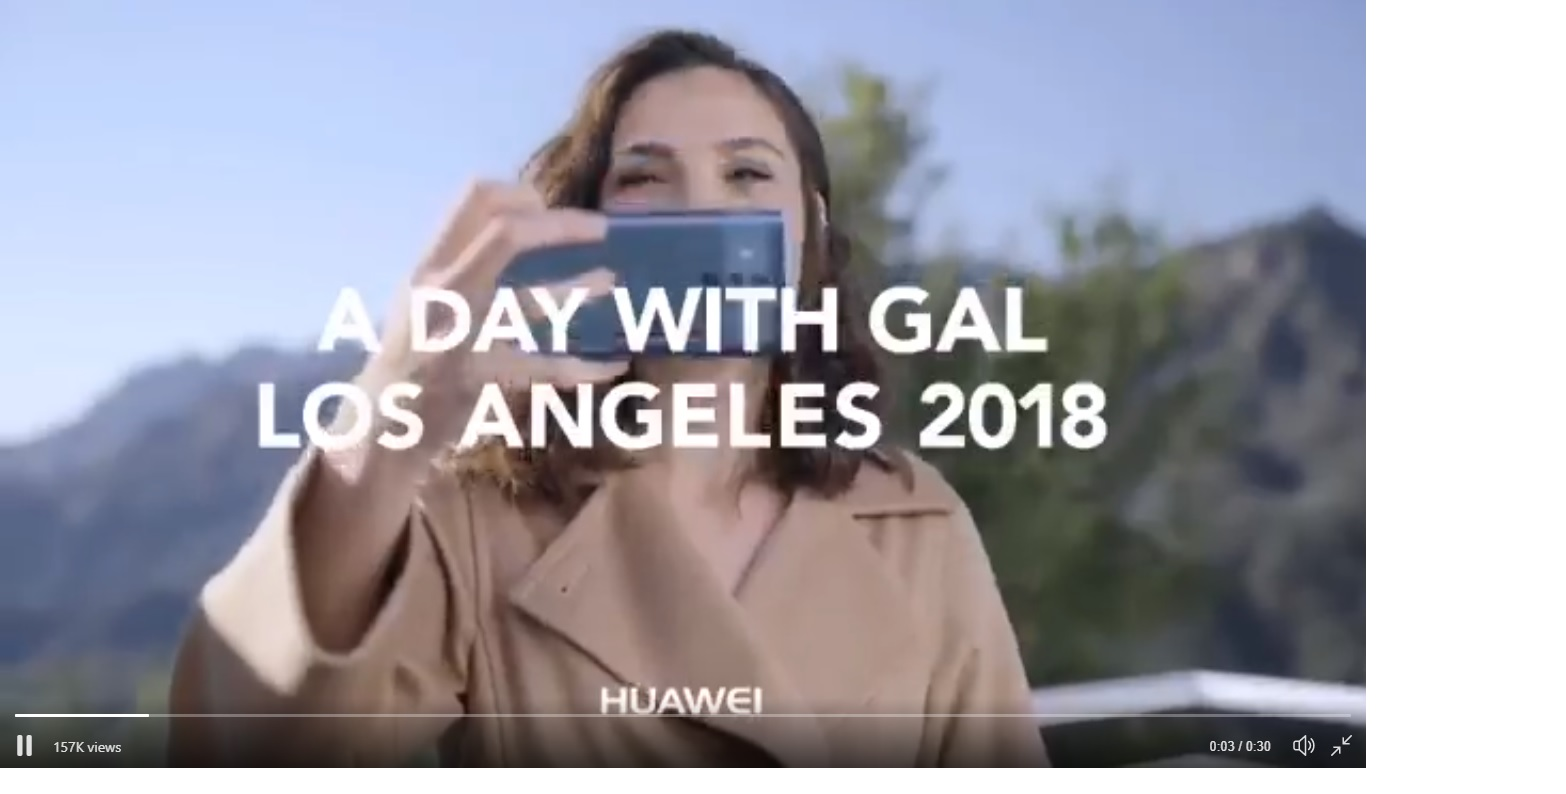 Gal Gadot tweets ad for Android from iPhone | The Times of